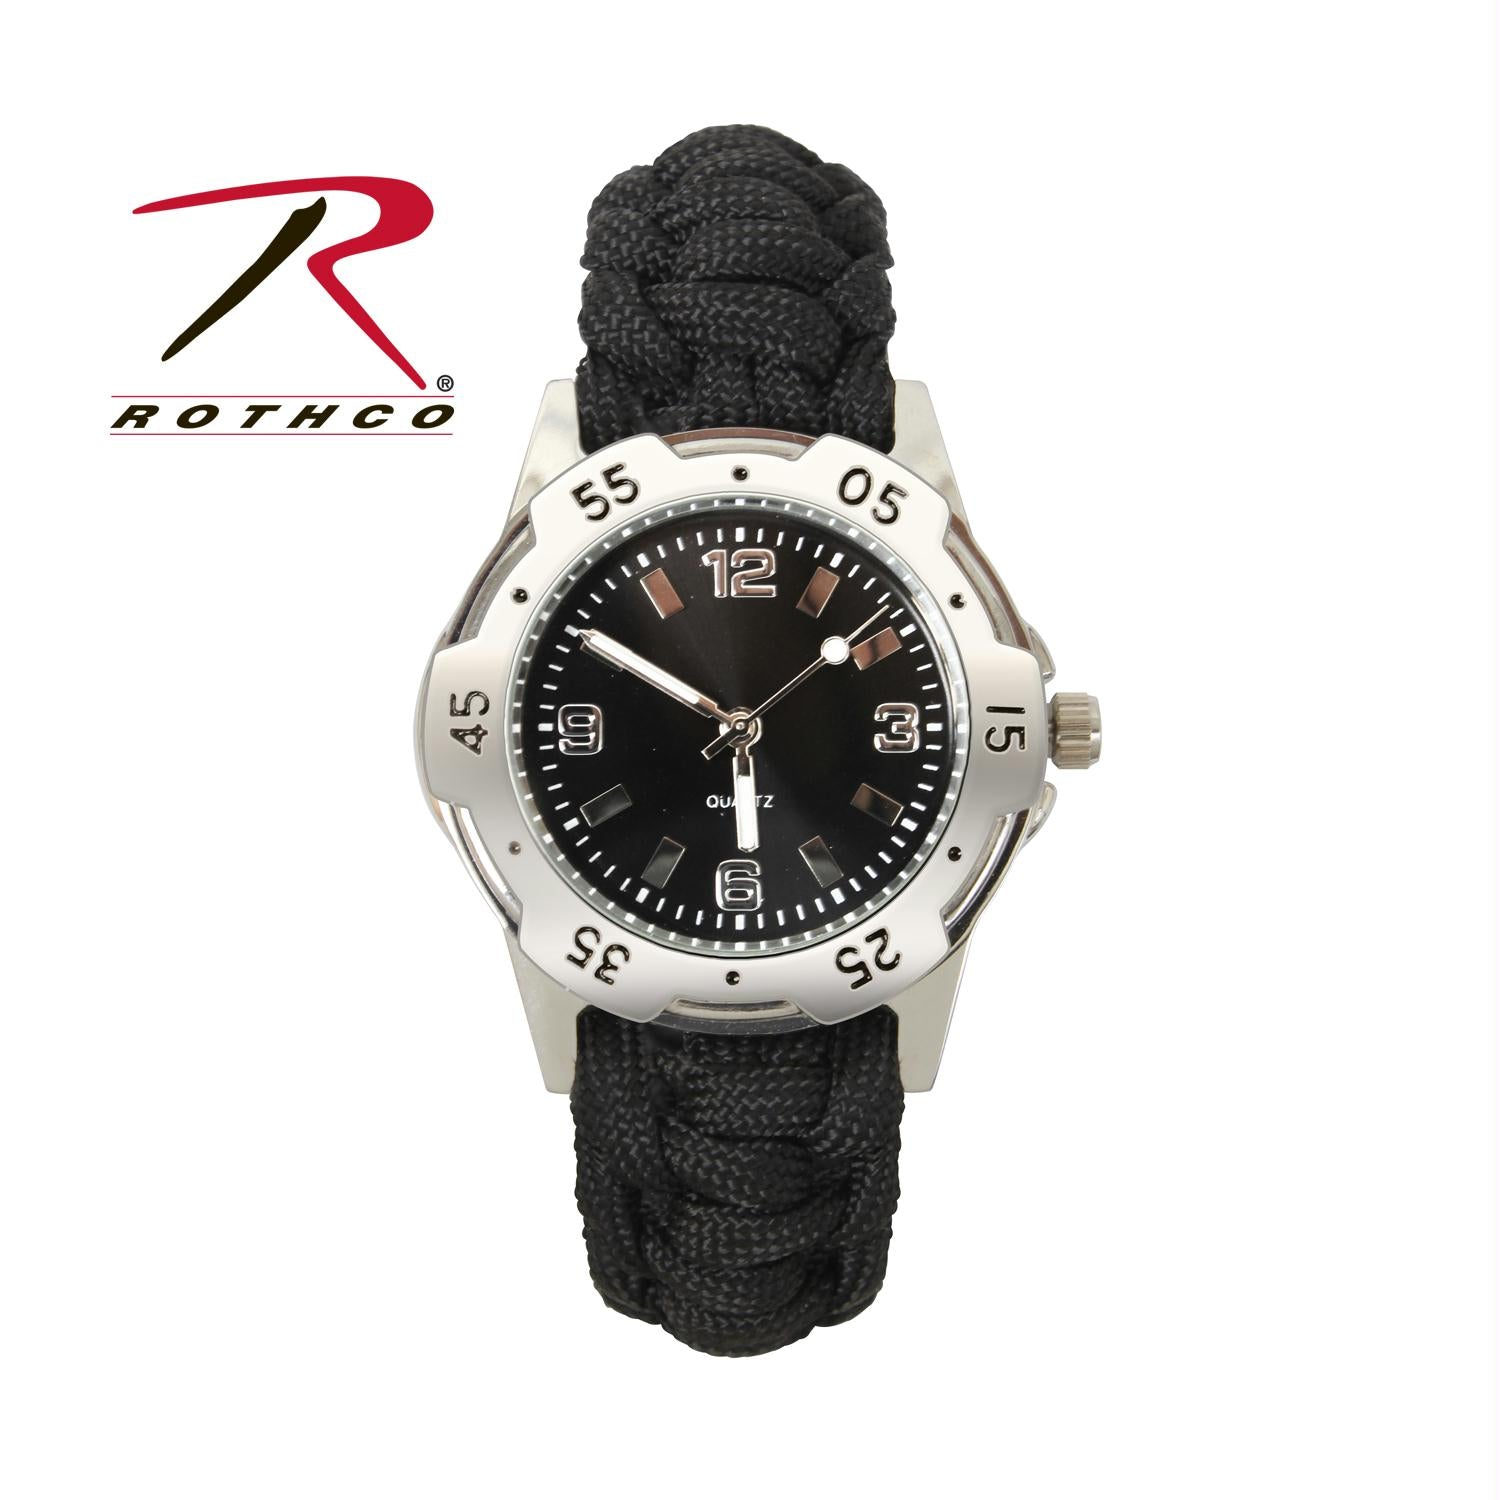 Rothco Paracord Bracelet Watch - Black / 9 Inches